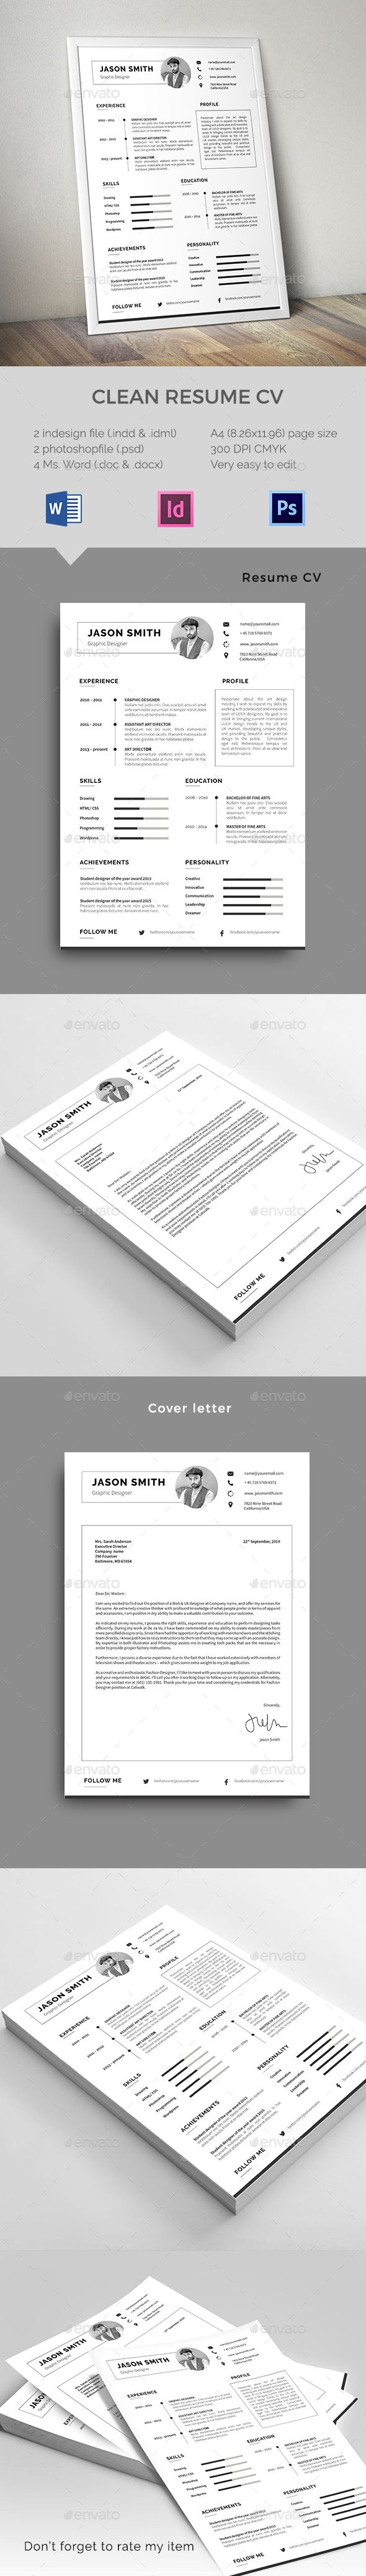 Clean Resume | Currículum y Portafolio